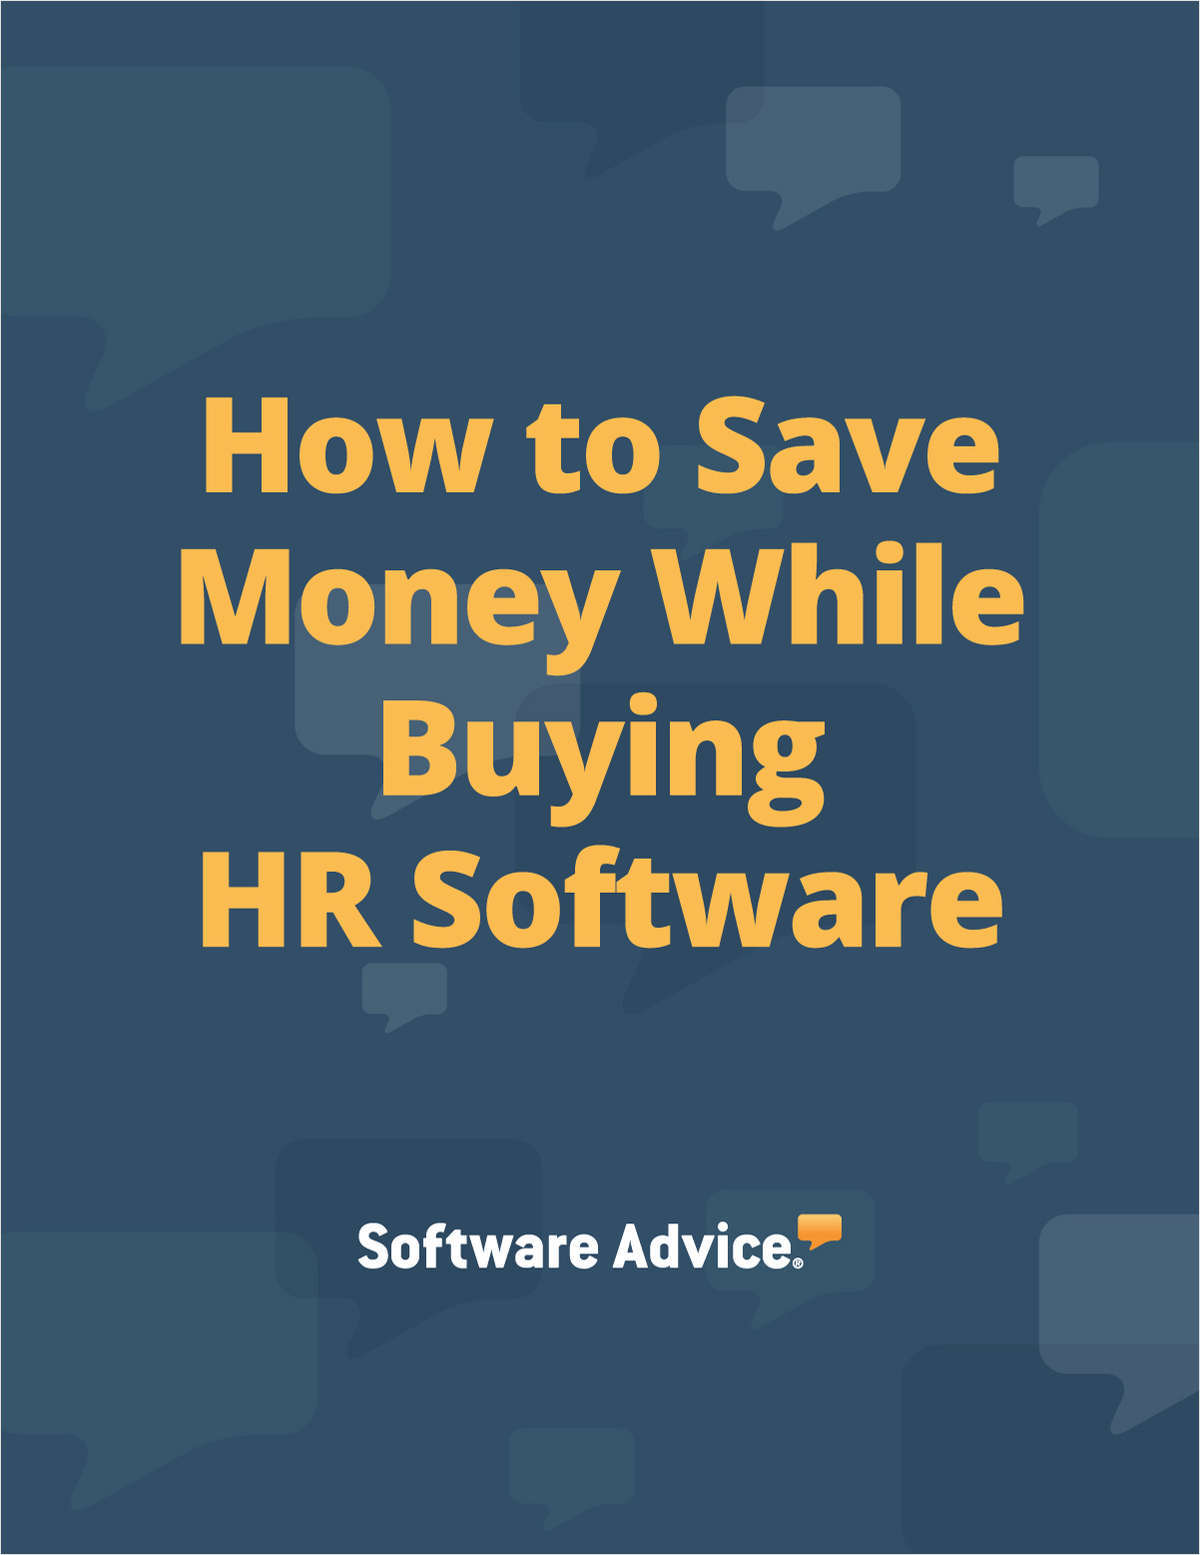 How to Save Money While Buying HR Software